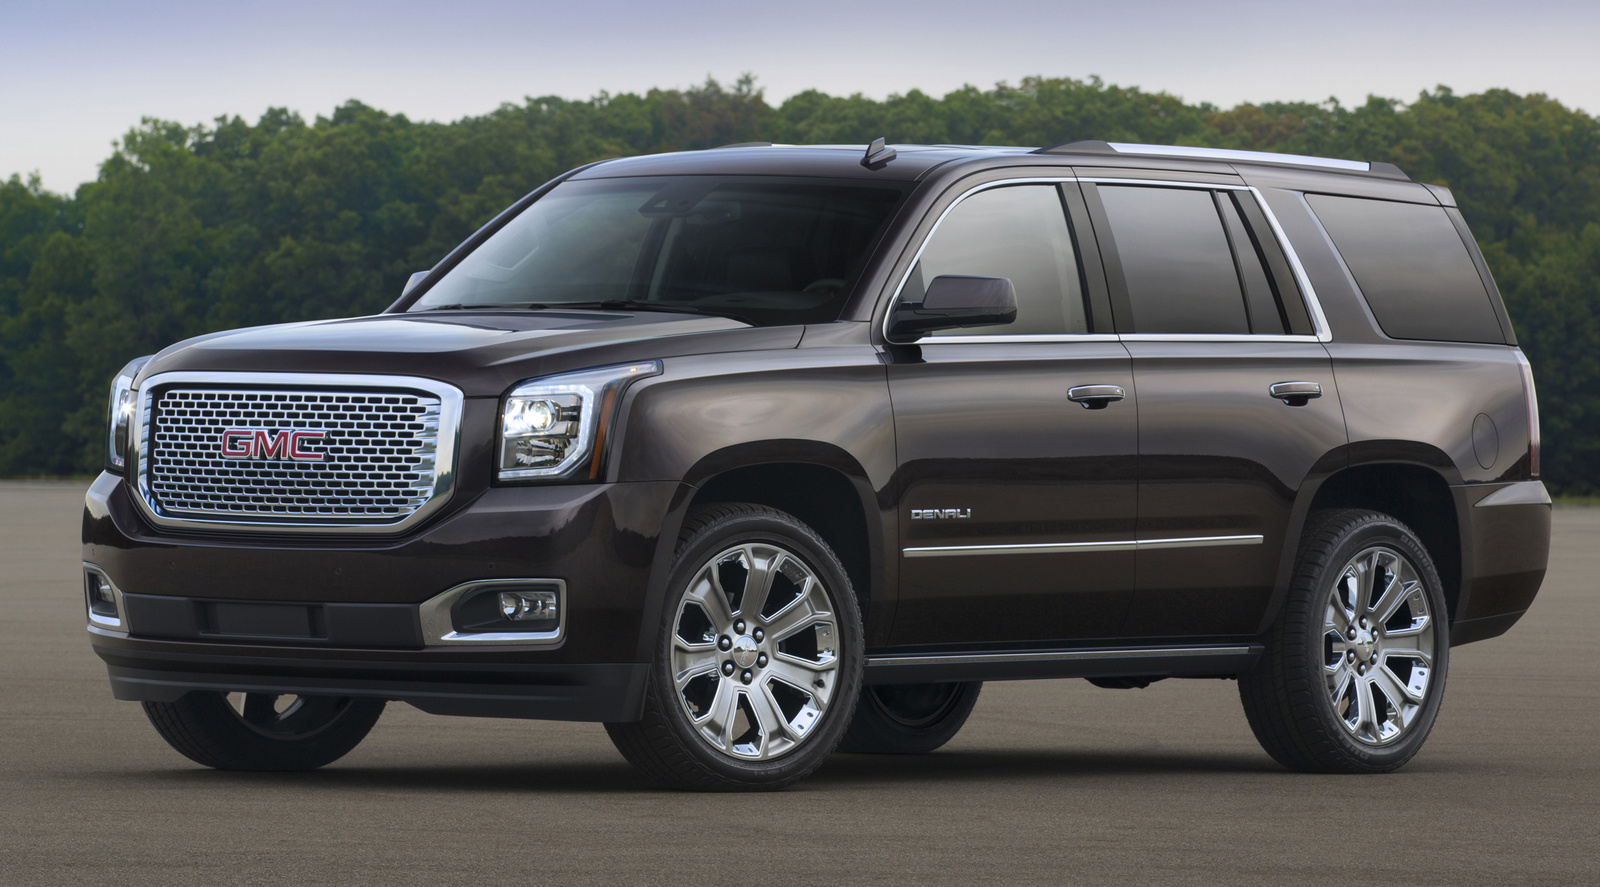 2016 / 2017 GMC Yukon Denali for Sale in your area - CarGurus